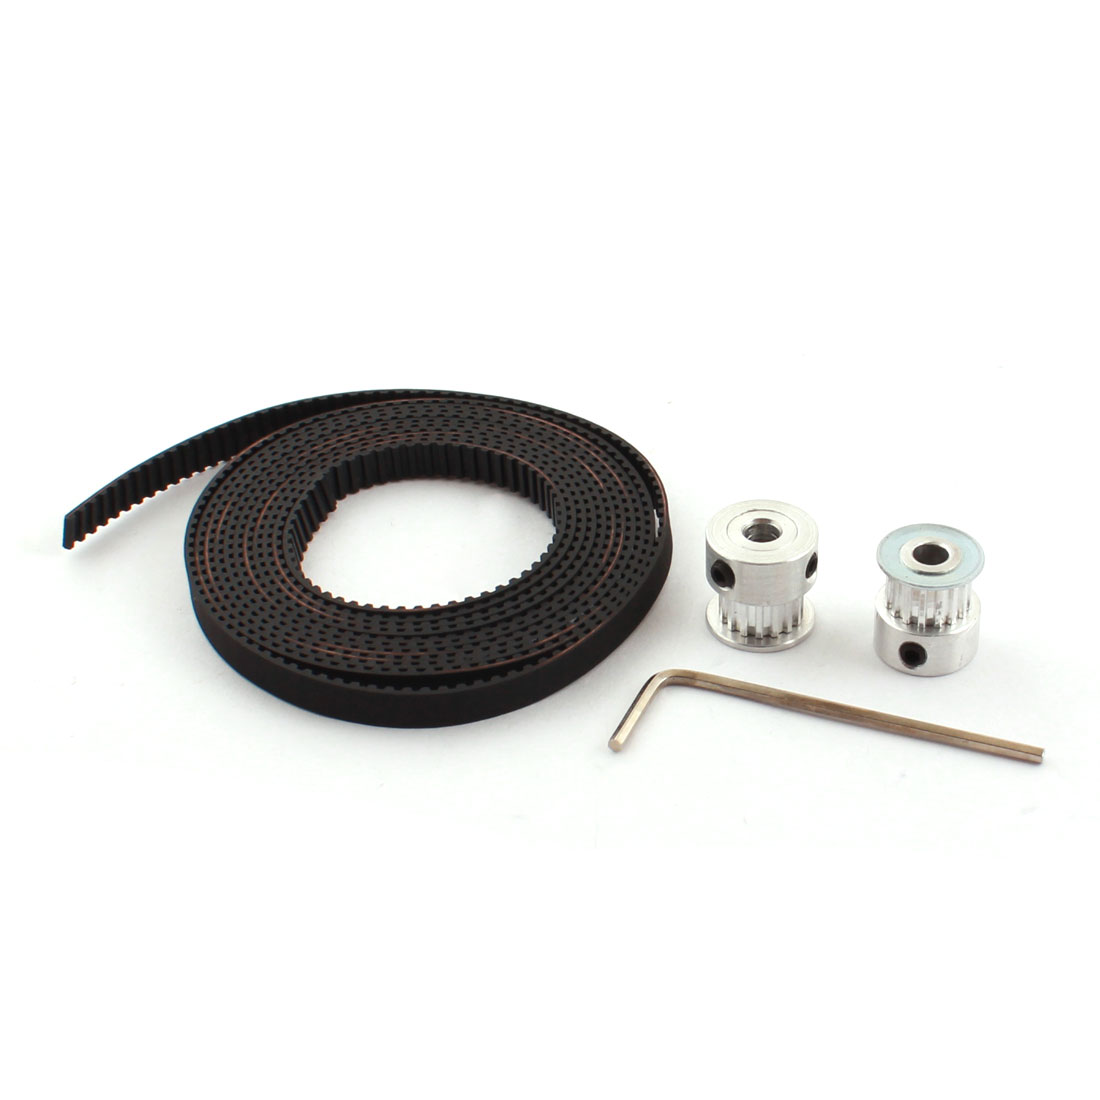 T2.5 16T 5mm Bore Timing Pulley Open End Belt 2M Set for RepRap 3D Printer